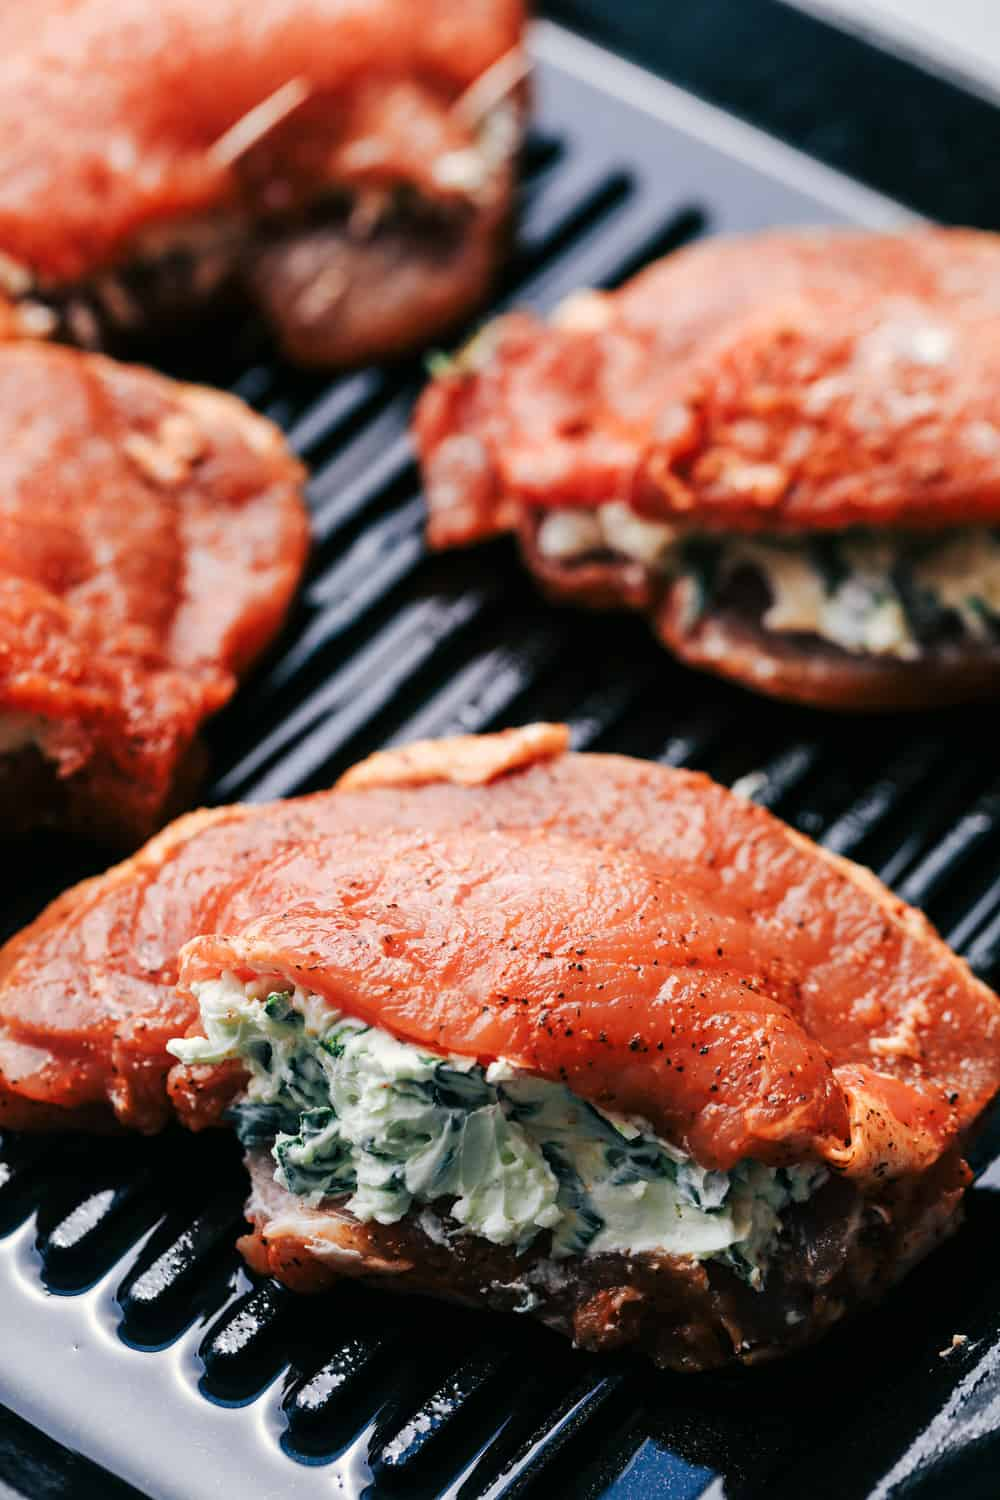 Grilled Spinach and Herb Stuffed Pork Chops | The Recipe Critic